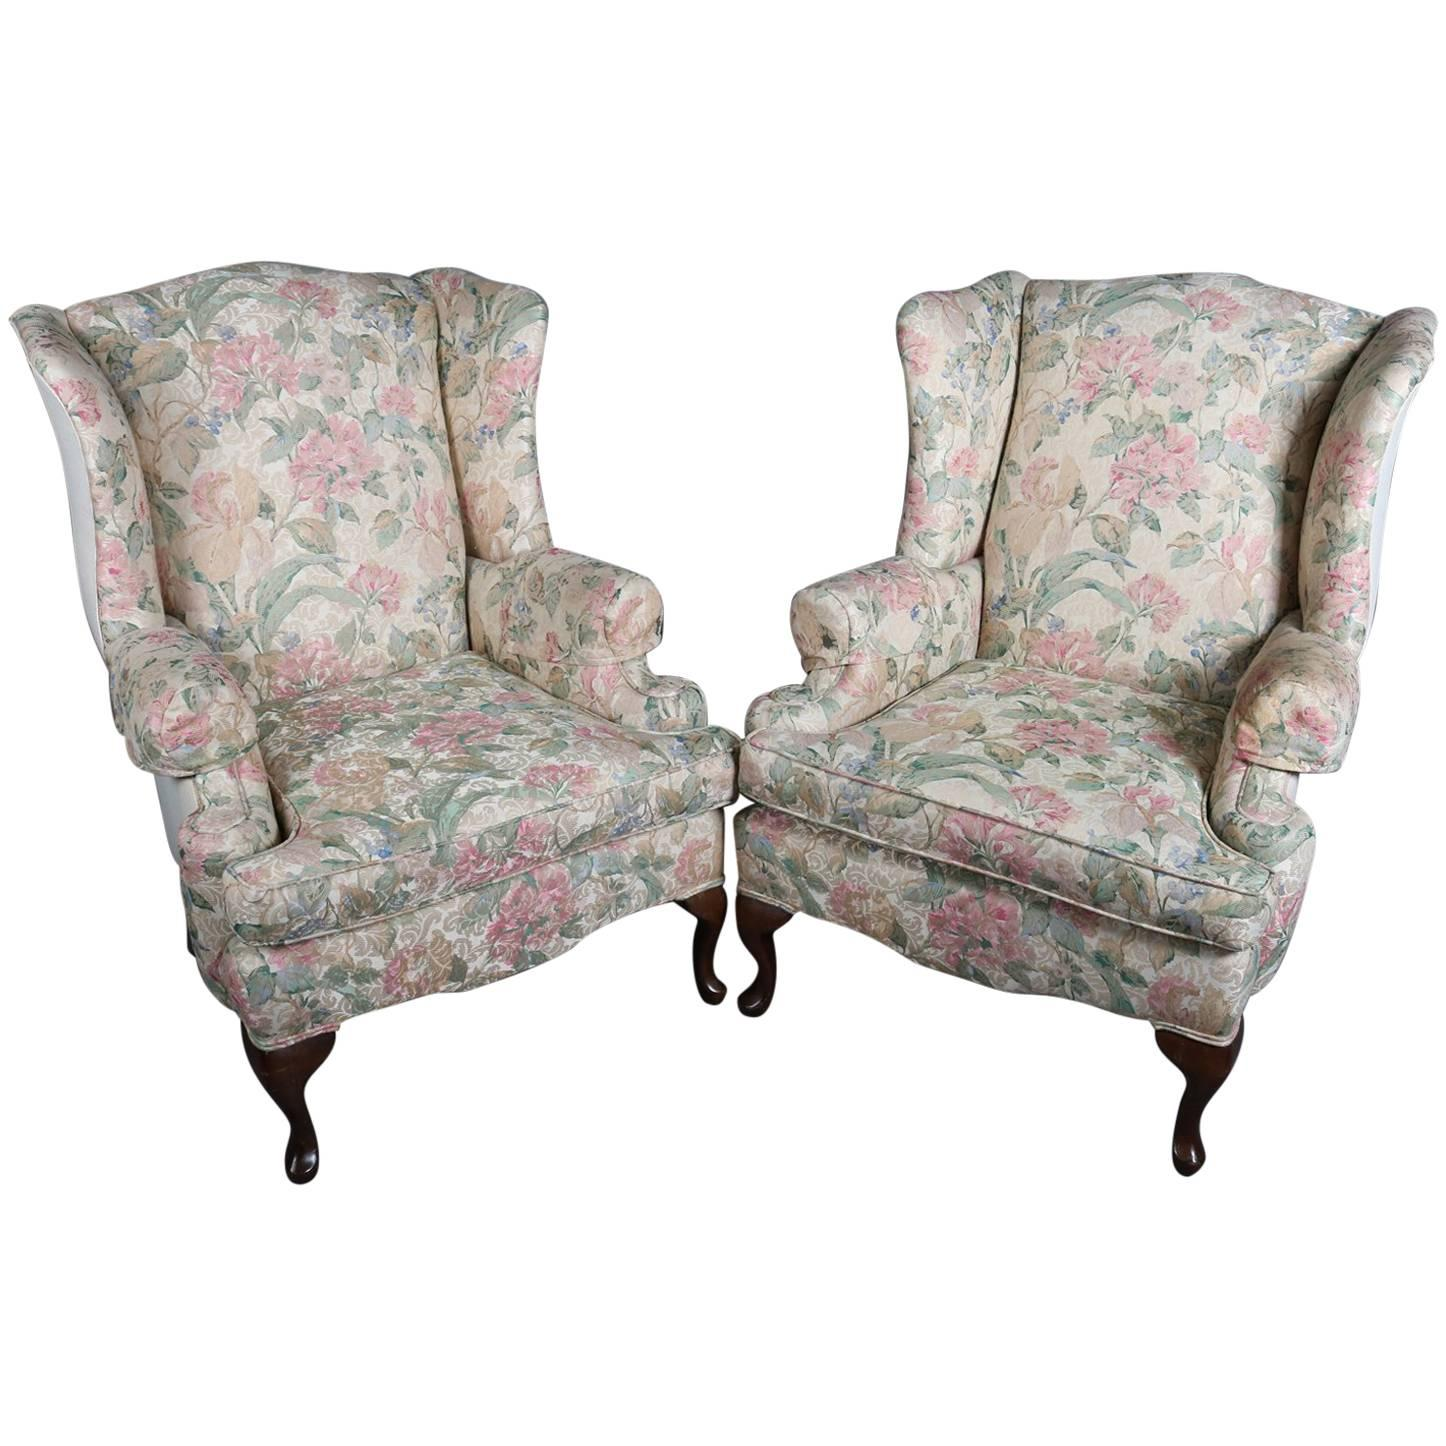 Genial Pair Of Queen Anne Style Floral Upholstered Wingback Chairs, 20th Century  For Sale